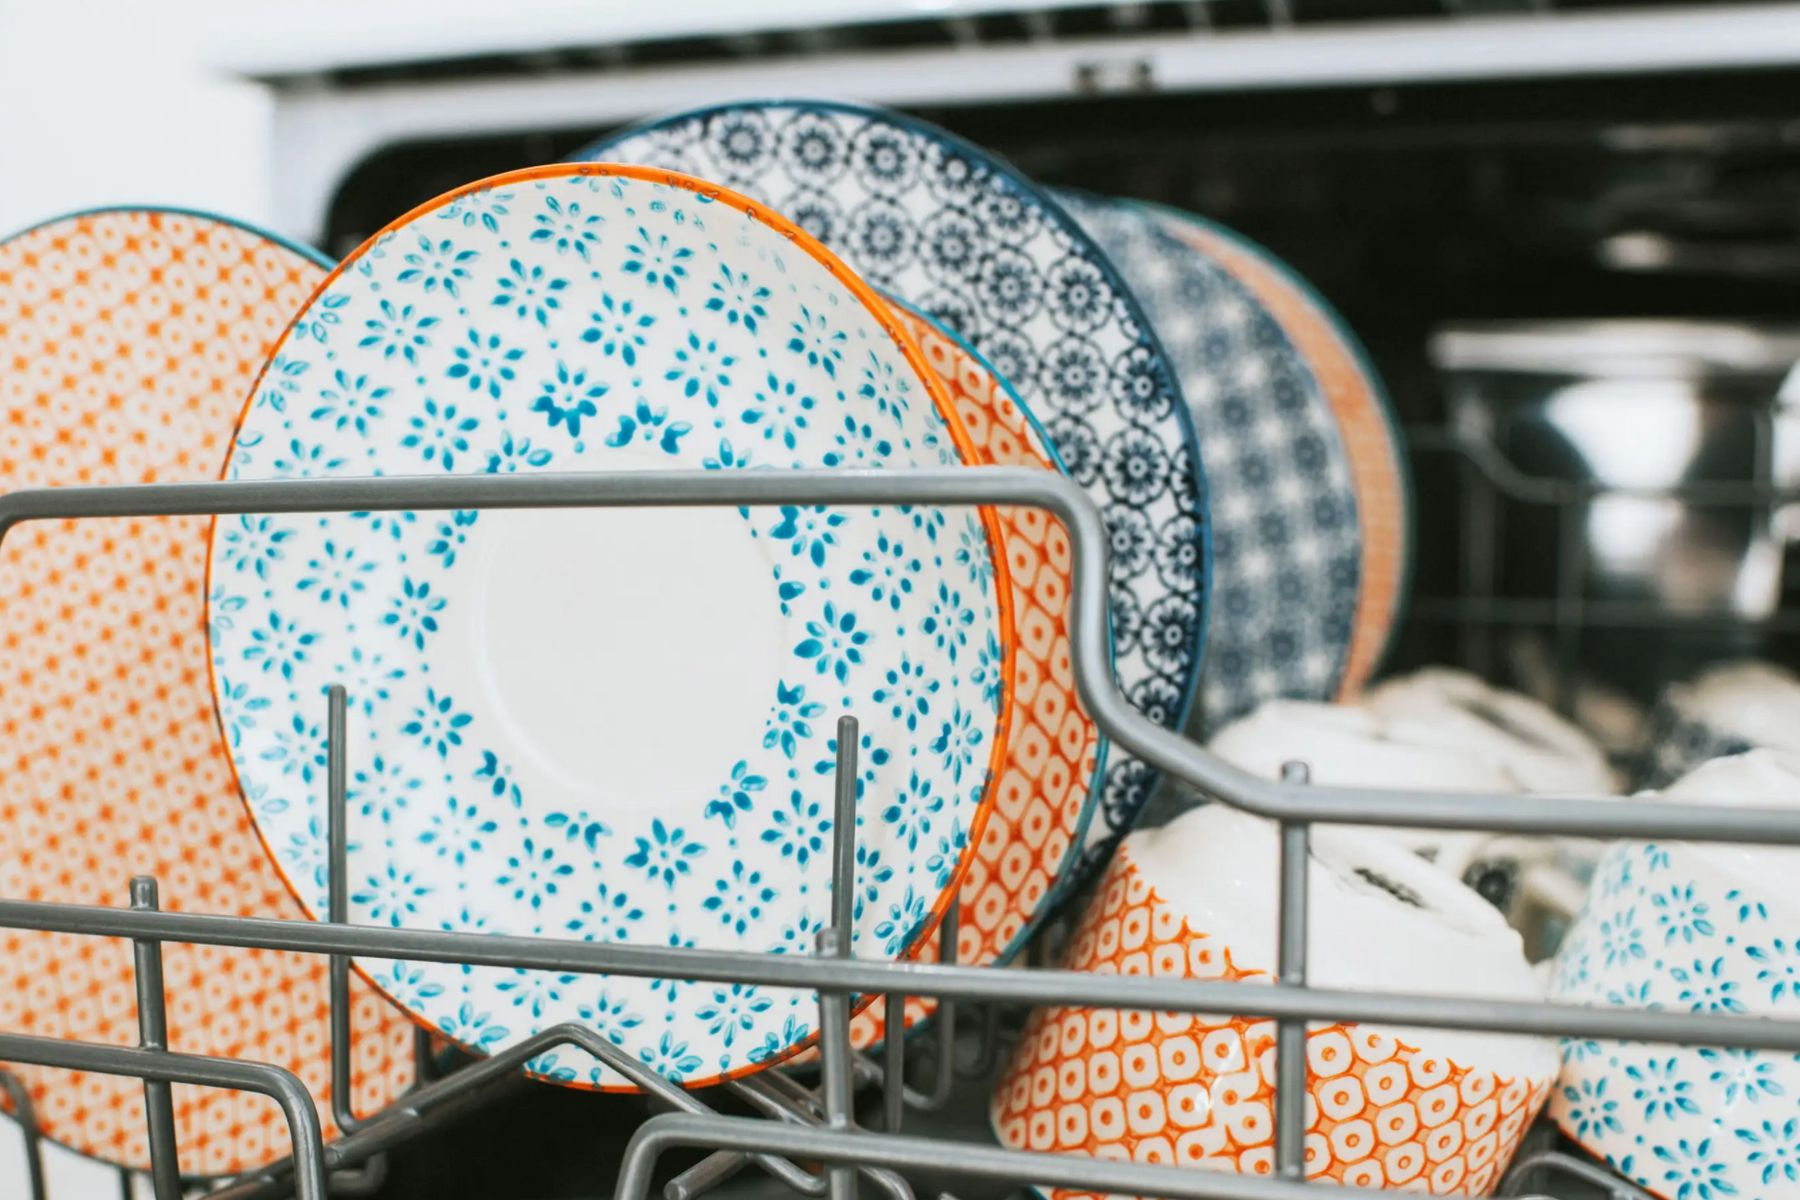 Orange and blue plates stacked in a dishwasher